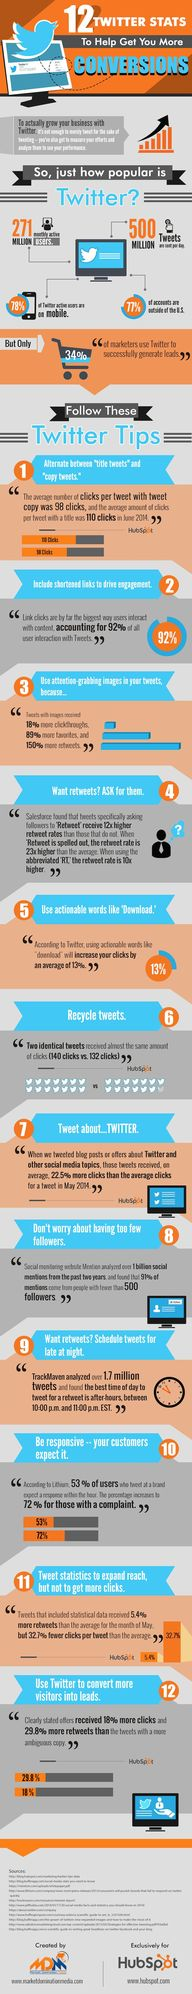 12 Twitter Stats to